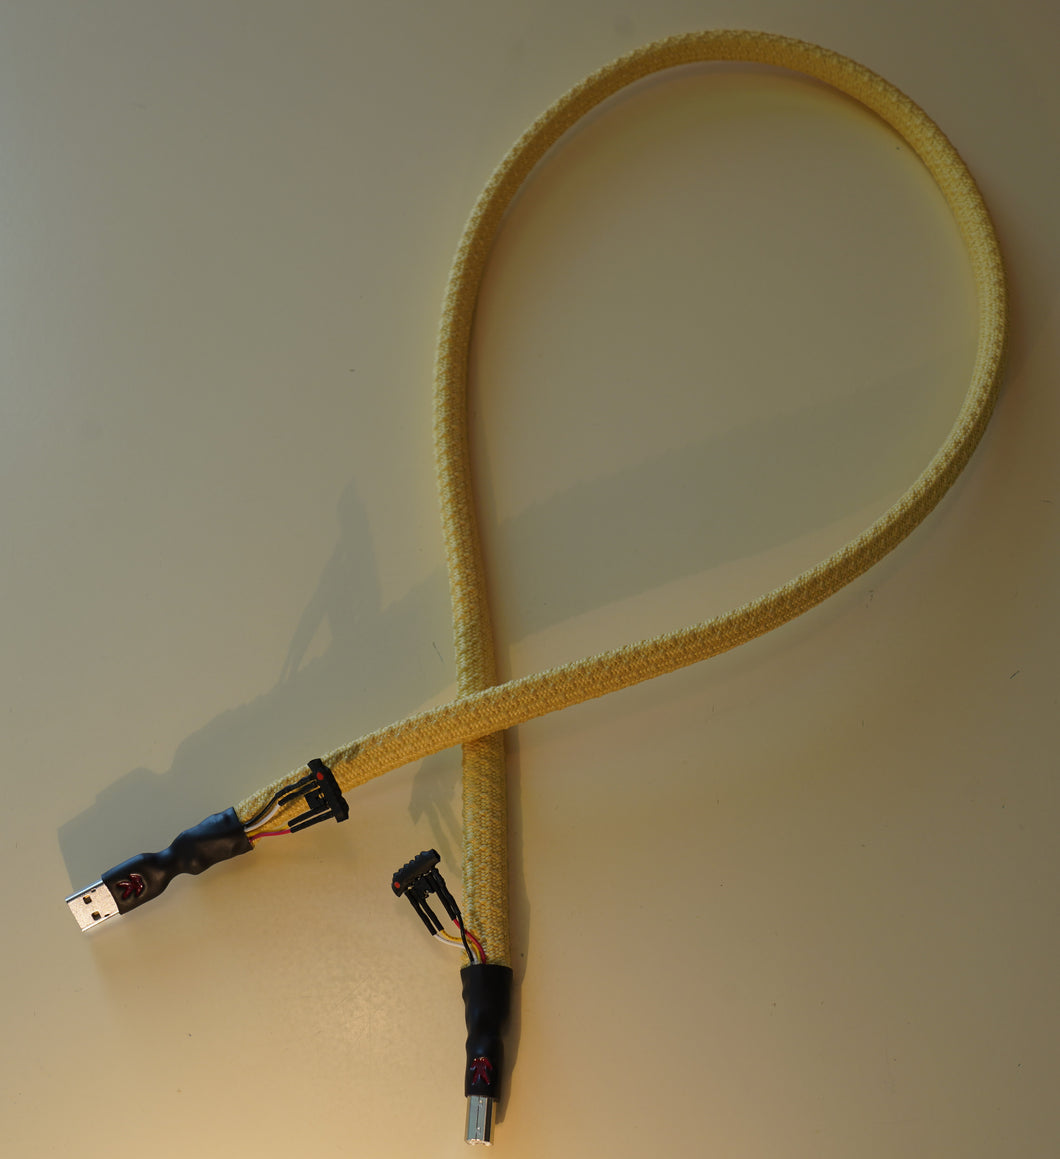 Lush^2 USB Audio Cable